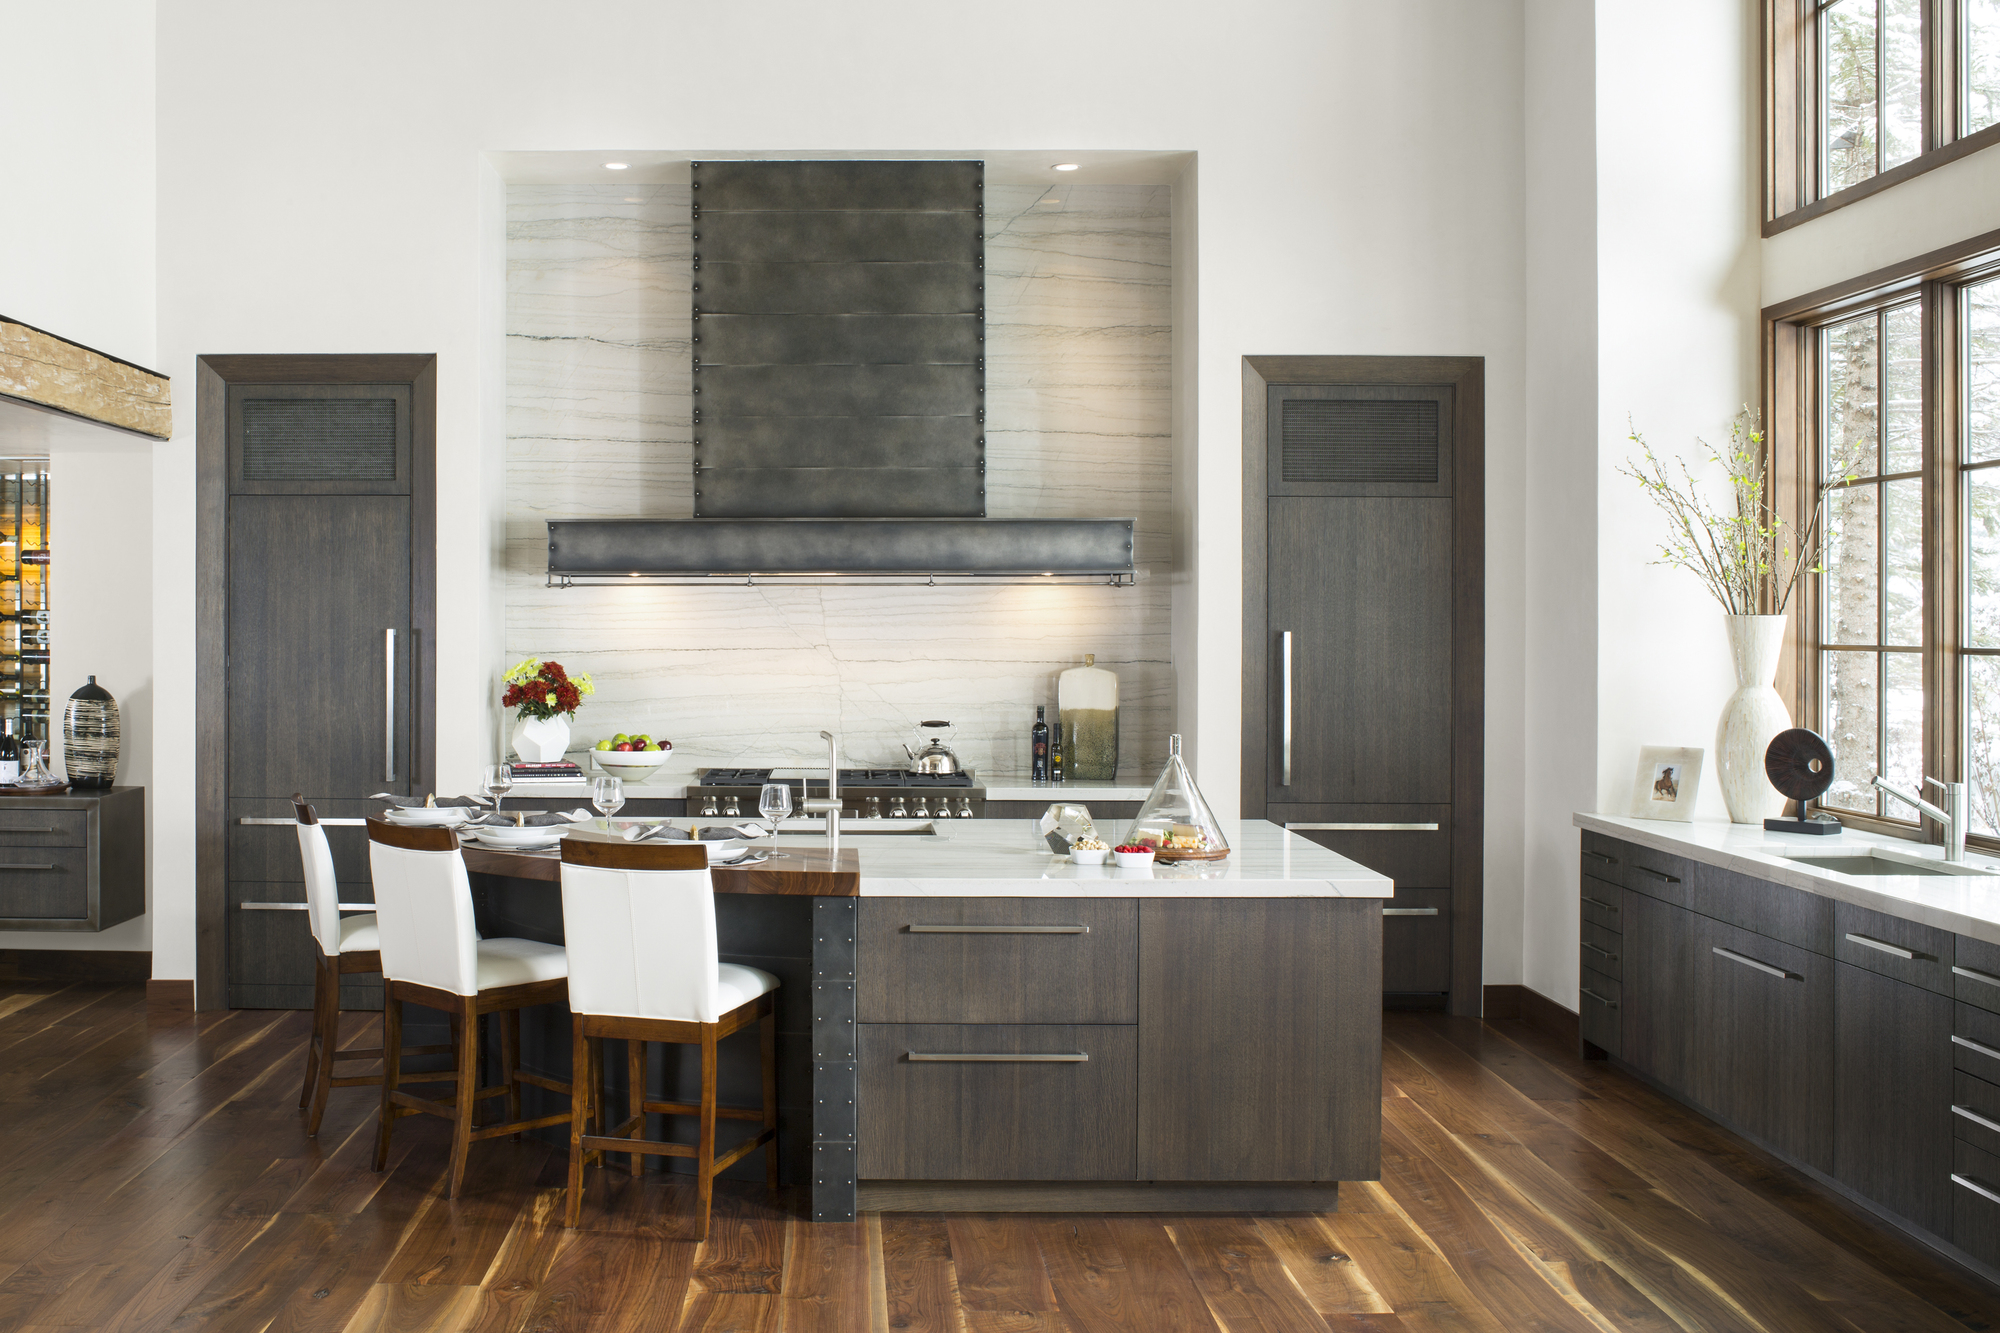 The World S Most Prominent Kitchen Design Contest Is Now Accepting Entries Archdaily